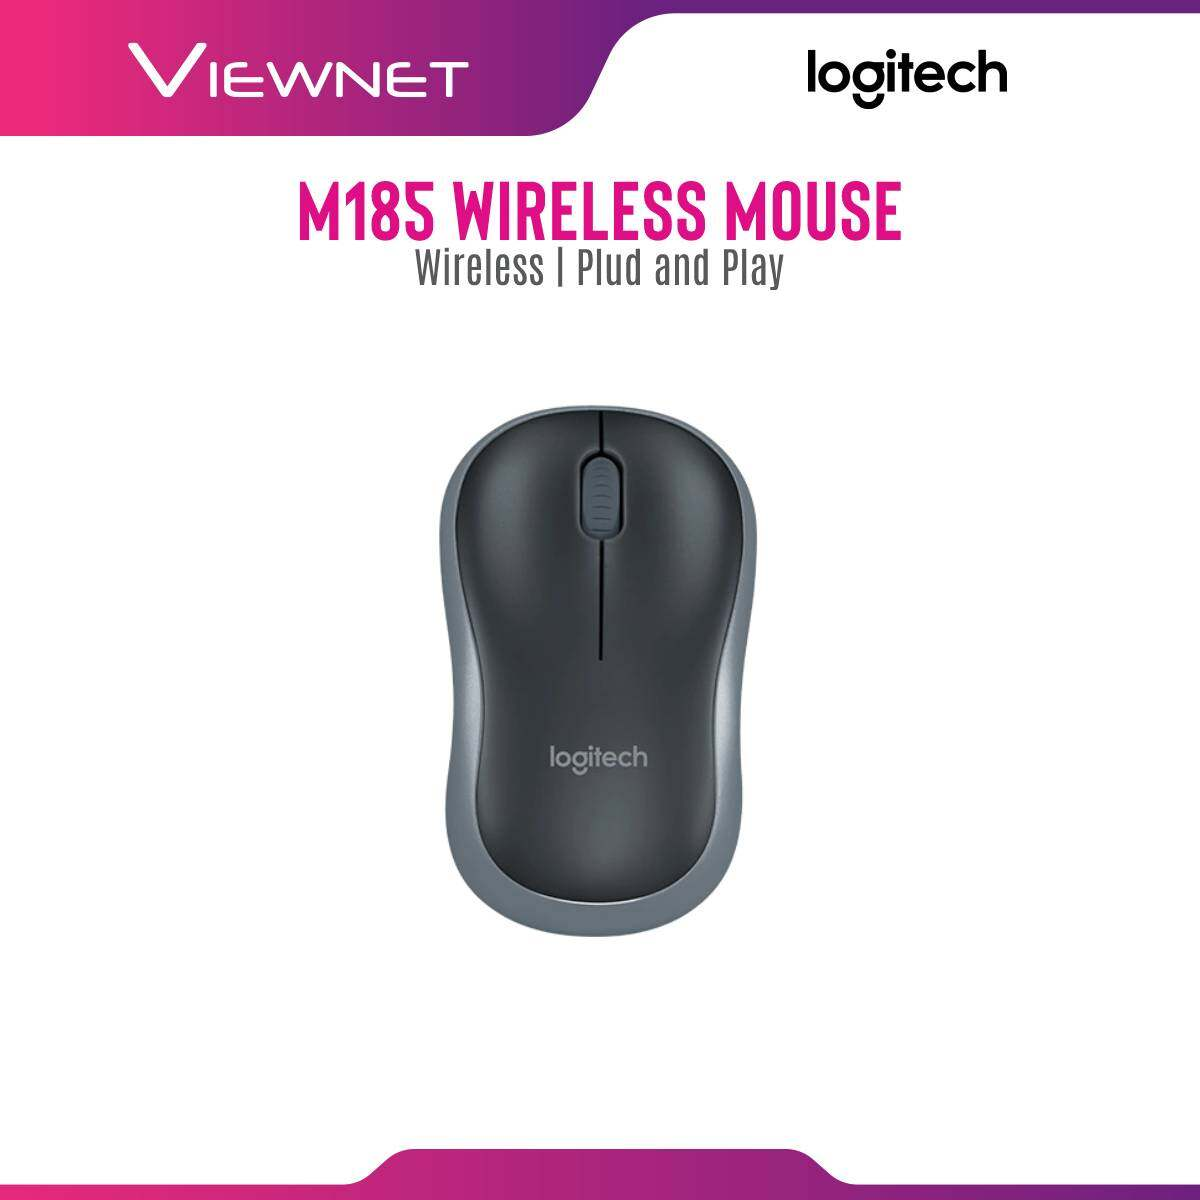 Logitech M185 Compact Plug-and-Play Wireless Mouse with USB Nano Receiver (Grey/Red/Blue) Durable & Designed for Laptops, Mac & Windows Compatible